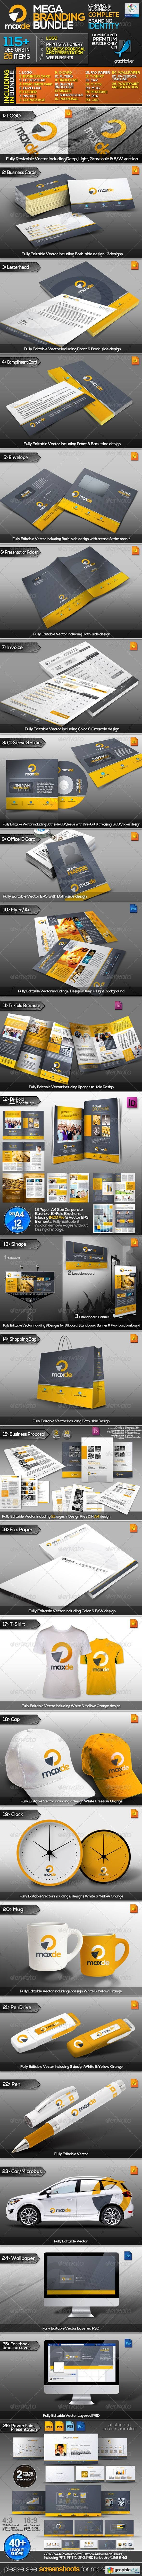 Maxde: Corporate Business ID Mega Branding Bundle